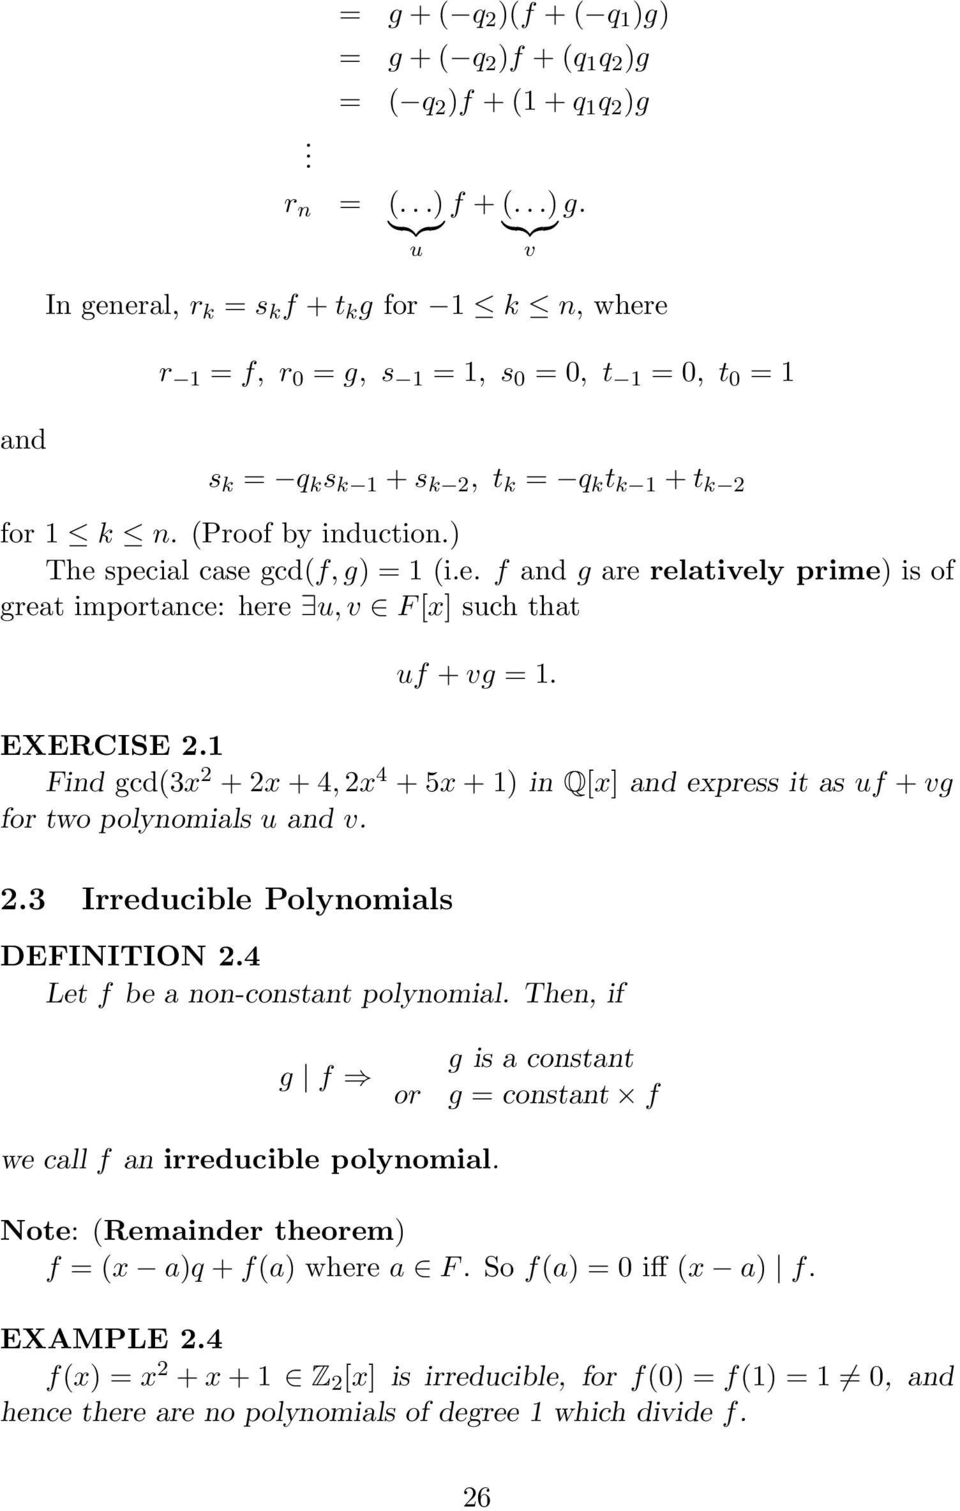 u, v F [x] such that uf + vg = 1 EXERCISE 21 Find gcd(3x 2 + 2x + 4, 2x 4 + 5x + 1) in Q[x] and express it as uf + vg for two polynomials u and v 23 Irreducible Polynomials DEFINITION 24 Let f be a